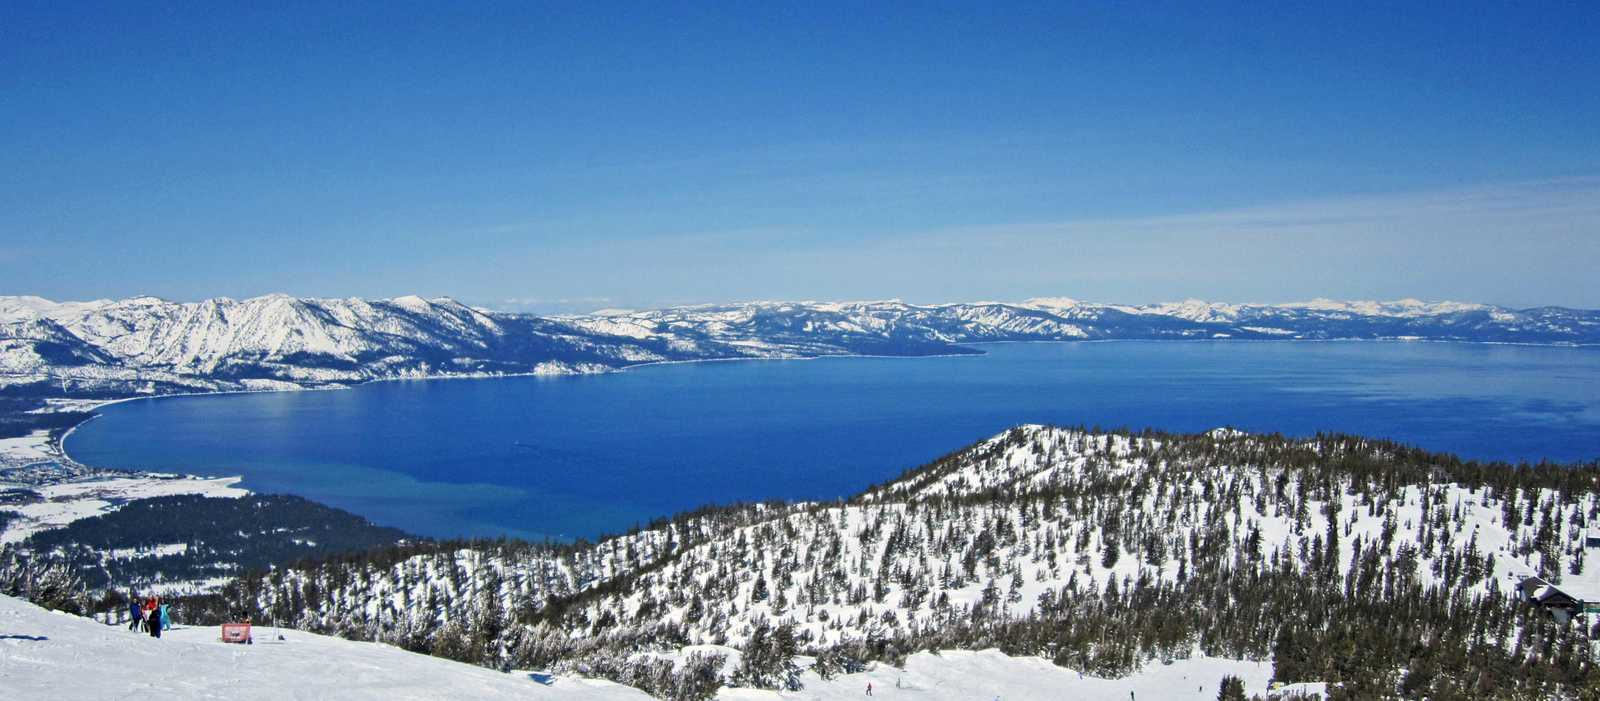 Heavenly - South Lake Tahoe